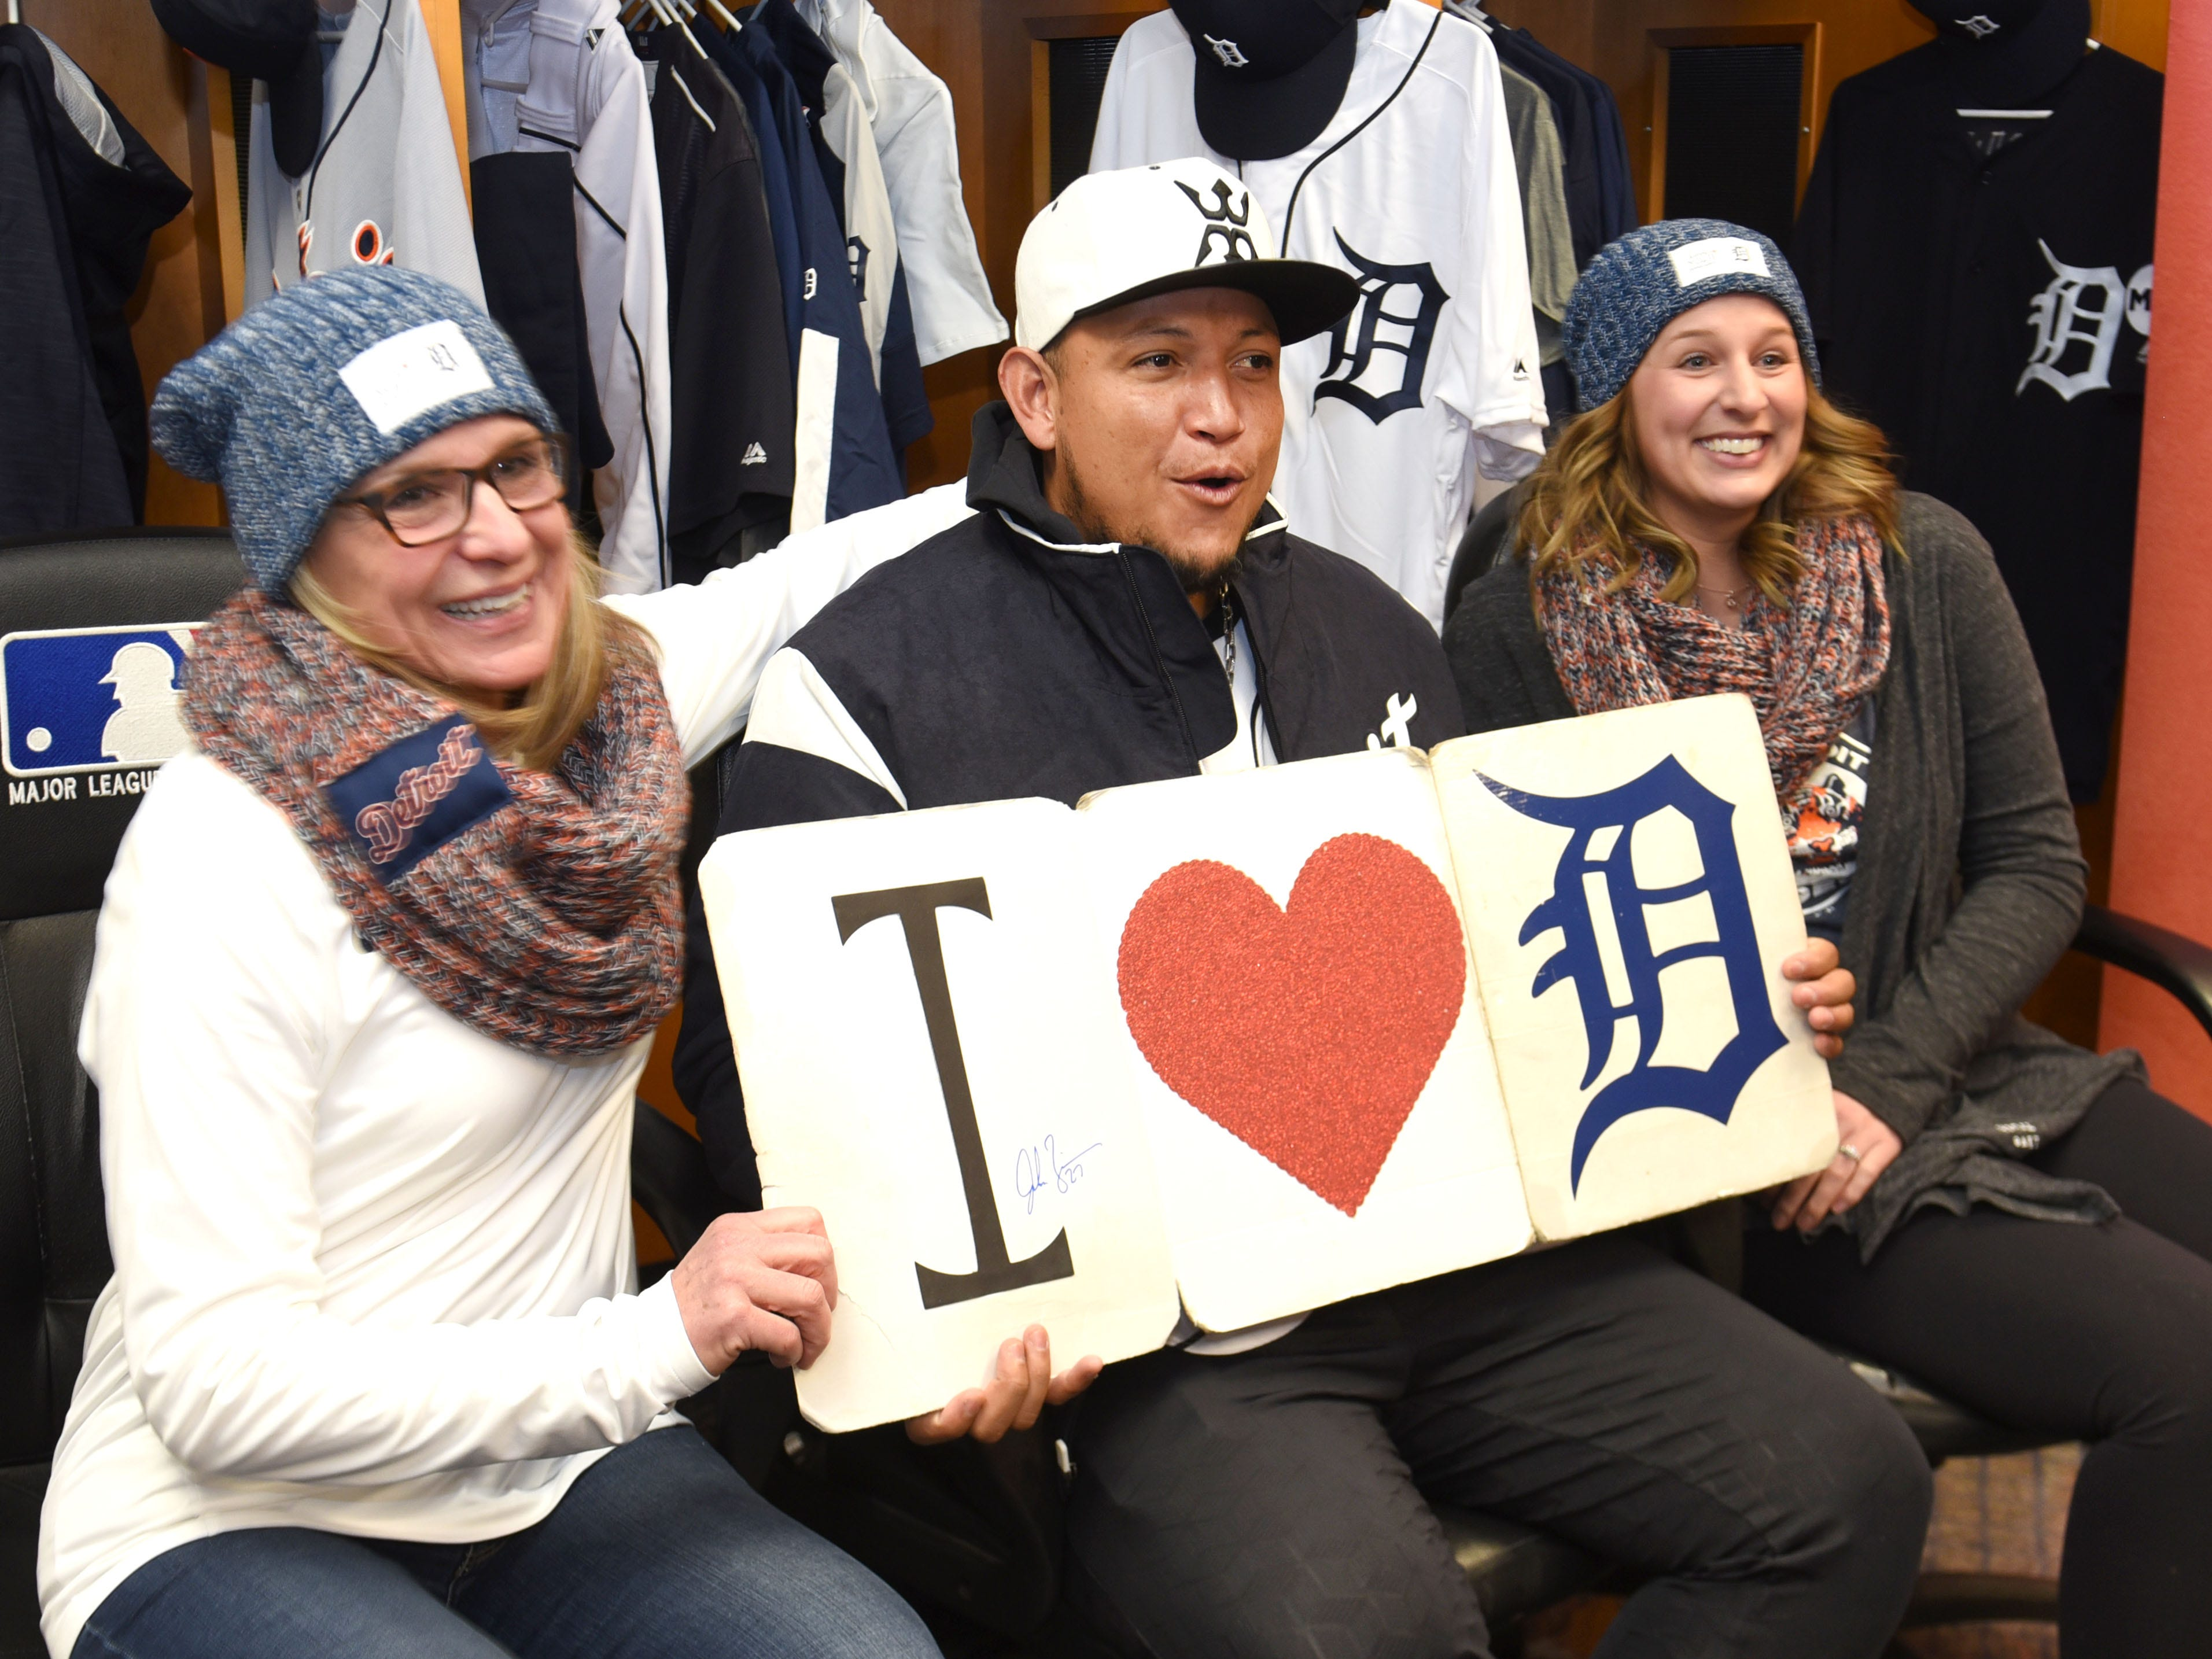 Detroit Tigers first baseman Miguel Cabrera is loved by Pam Theisen (left) and her daughter Katie of Flatrock at Comerica Park for TigerFest on Saturday, January 26, 2019.